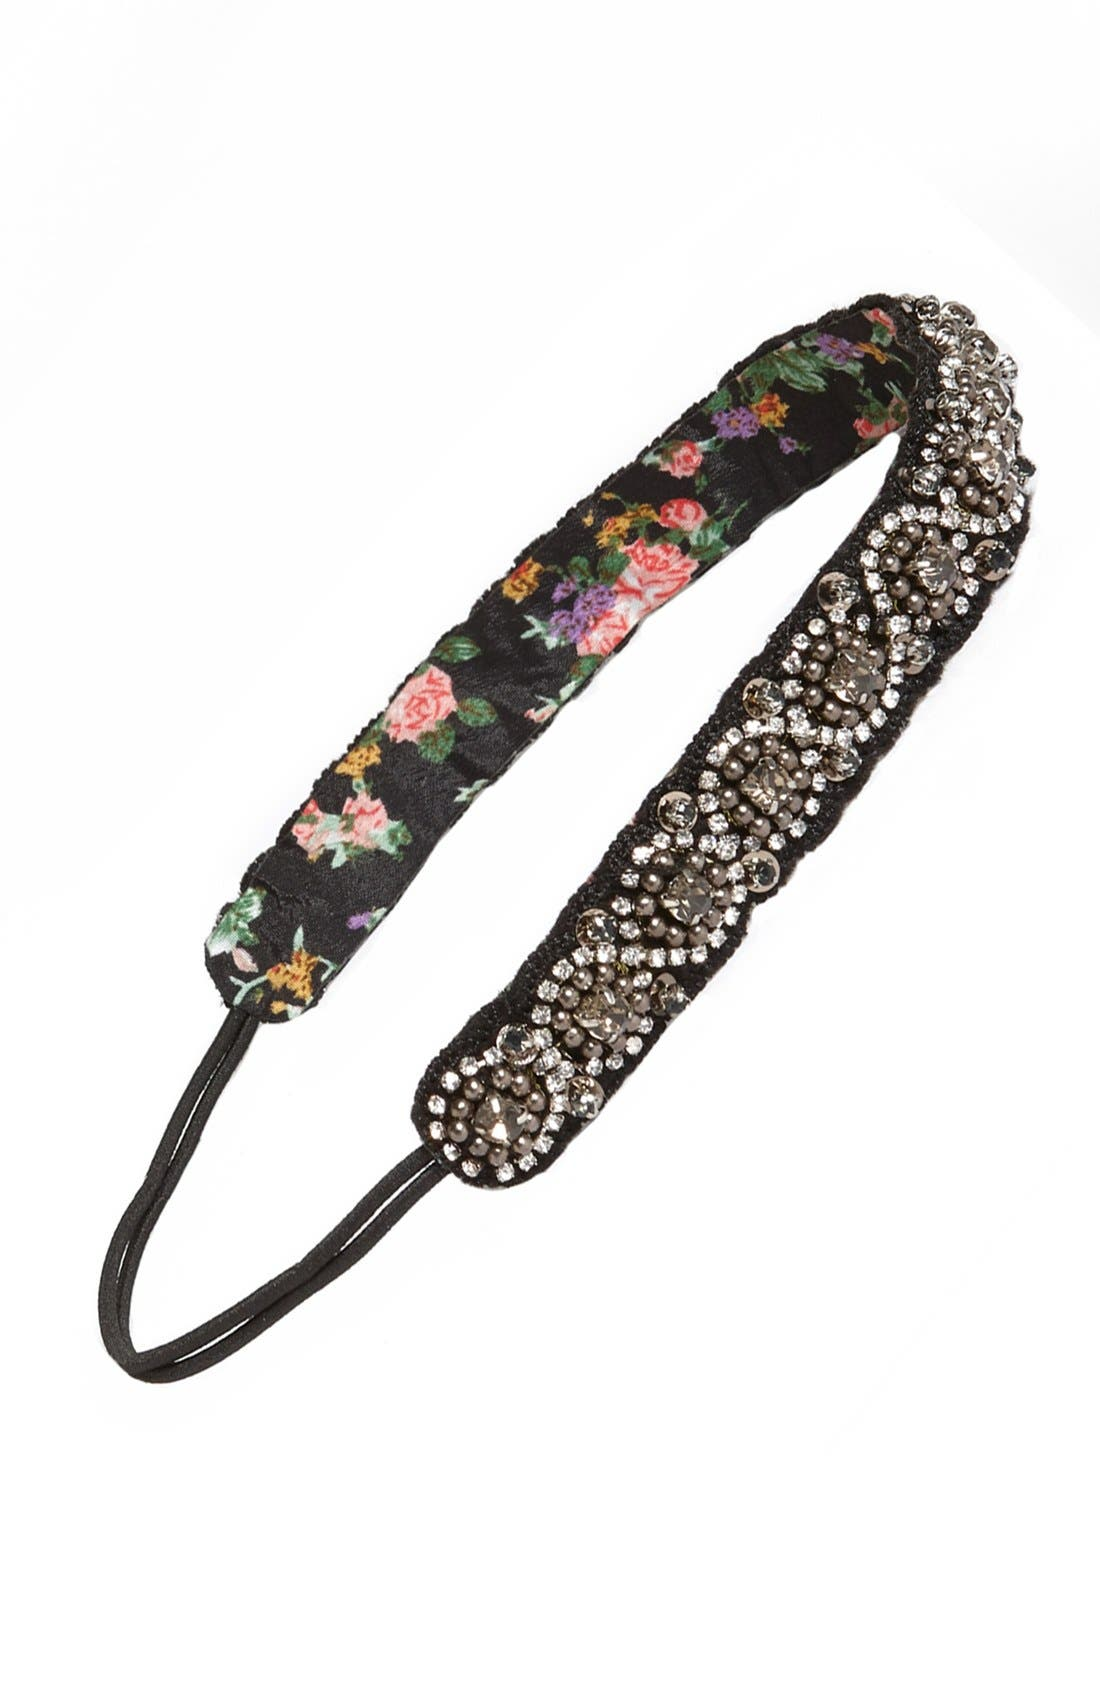 Alternate Image 1 Selected - Capelli of New York Beaded Head Wrap (Girls)